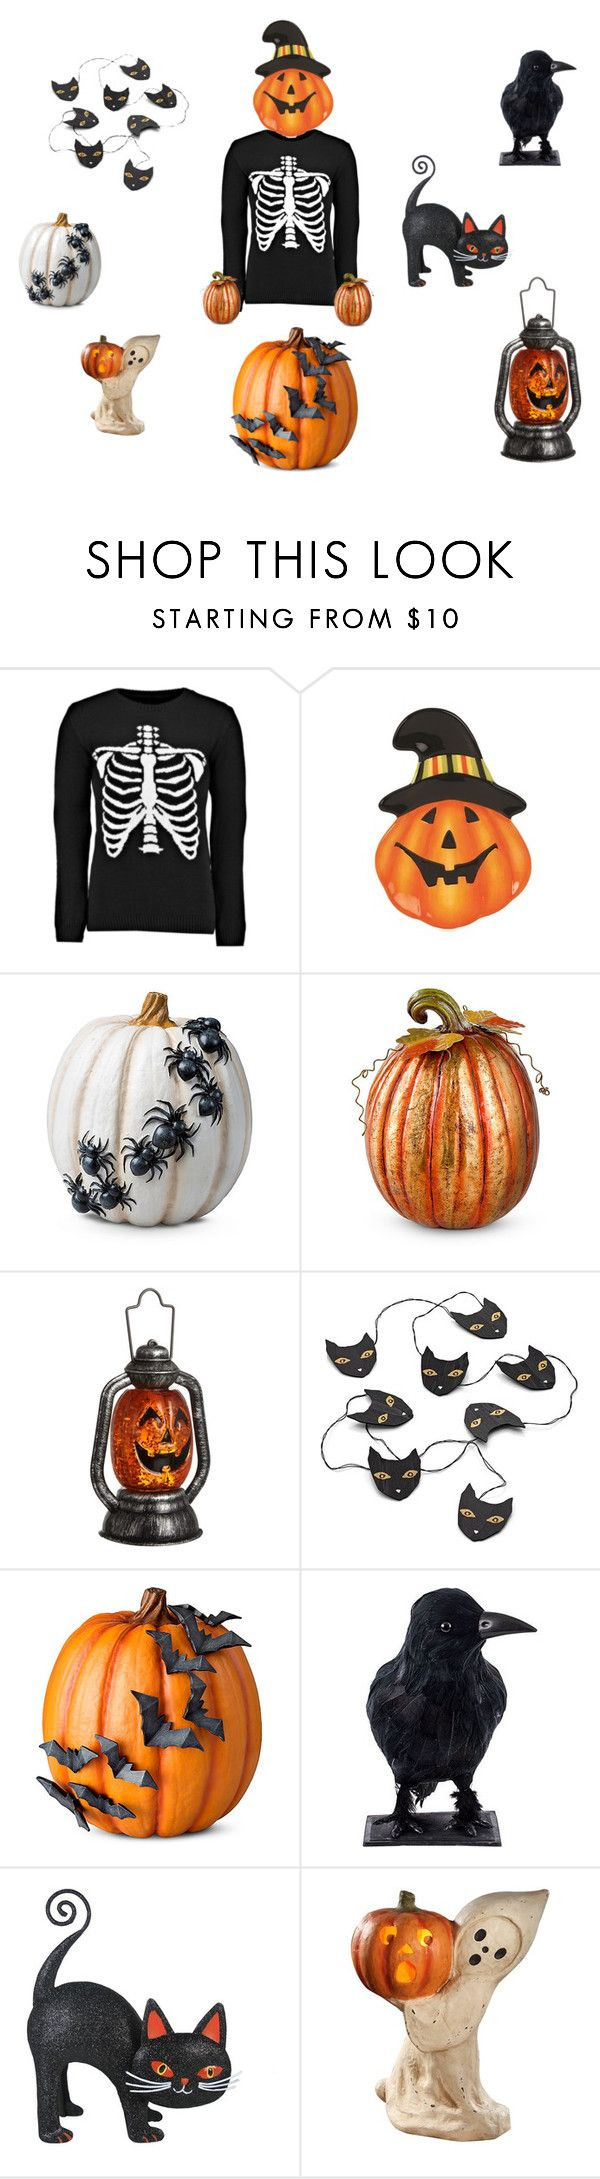 """~ BOO ~"" by grandfinery ❤ liked on Polyvore featuring Boohoo, Fitz & Floyd, Improvements, John Lewis, Crate and Barrel and Bethany Lowe"